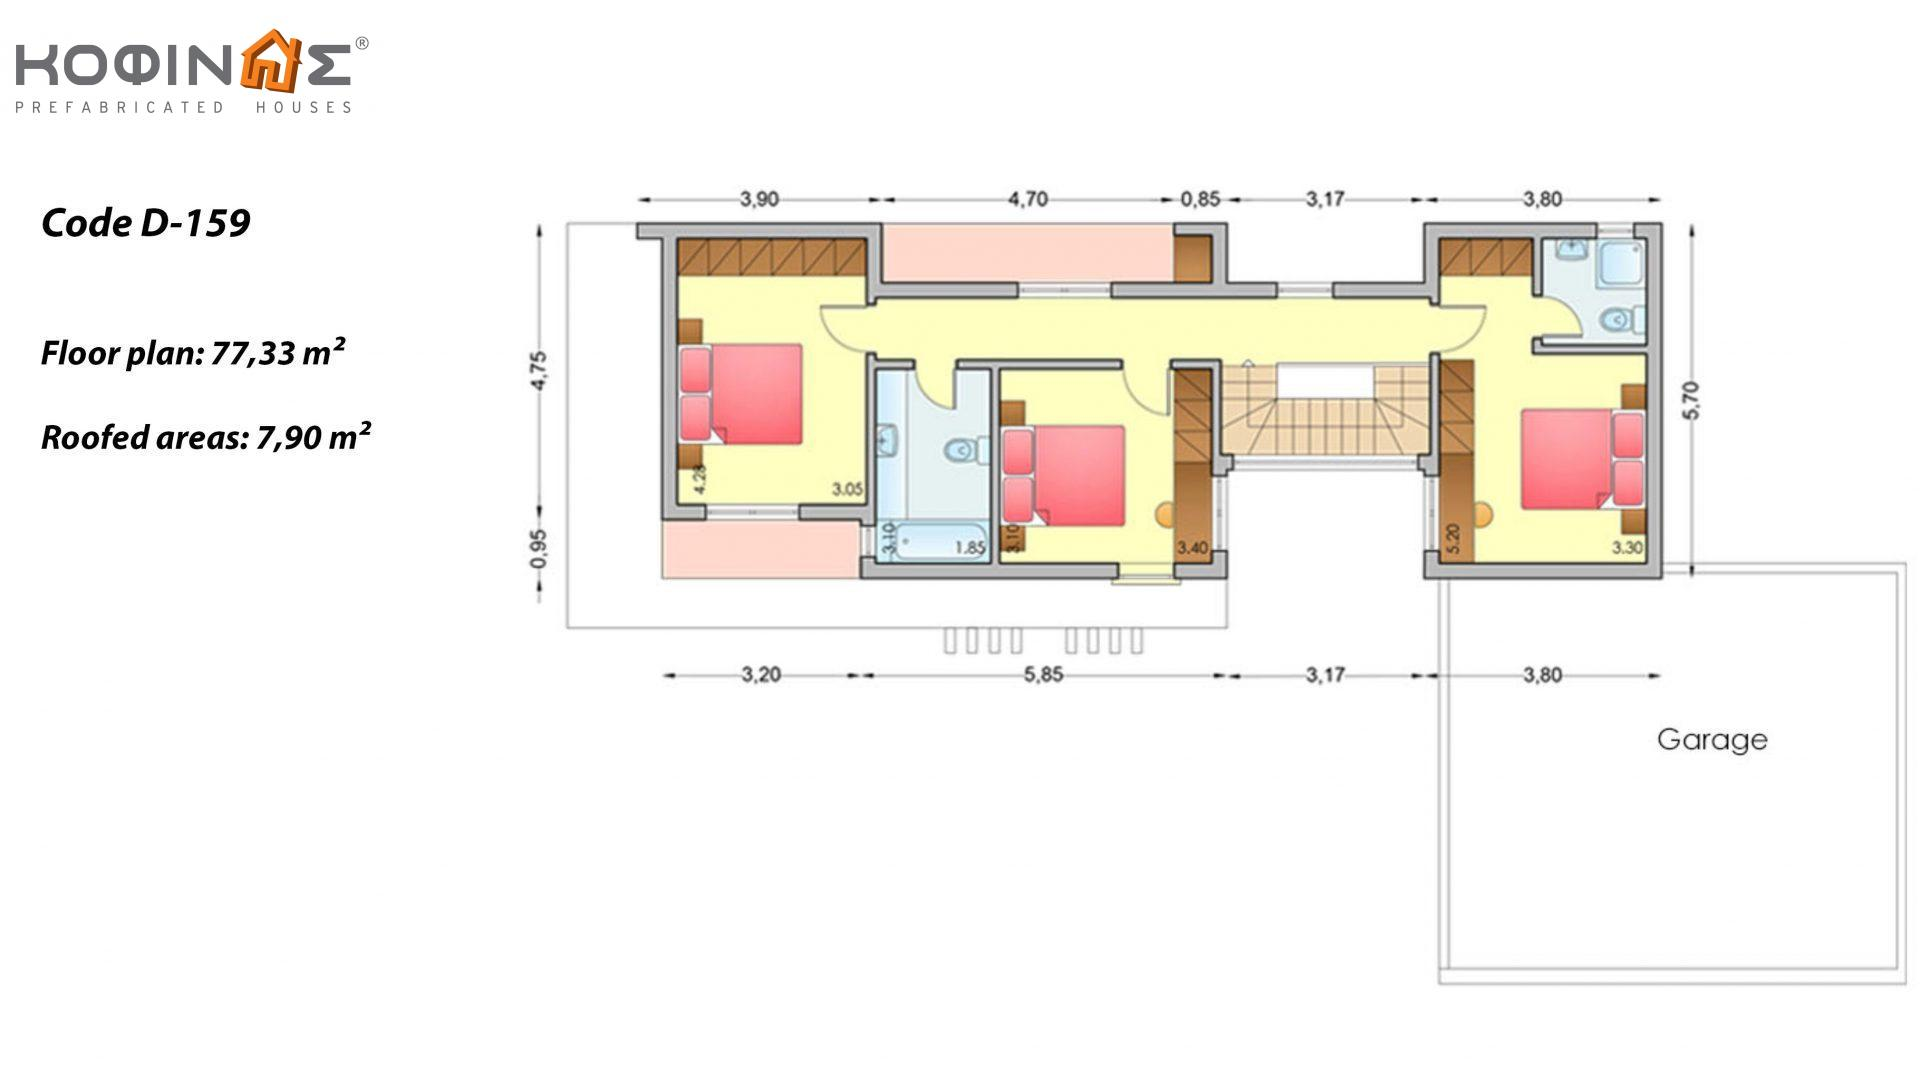 2-story house D-159, total surface of 159,96 m²,+Garage 34.44 m²(=194,40 m²),roofed areas 34.32 m²